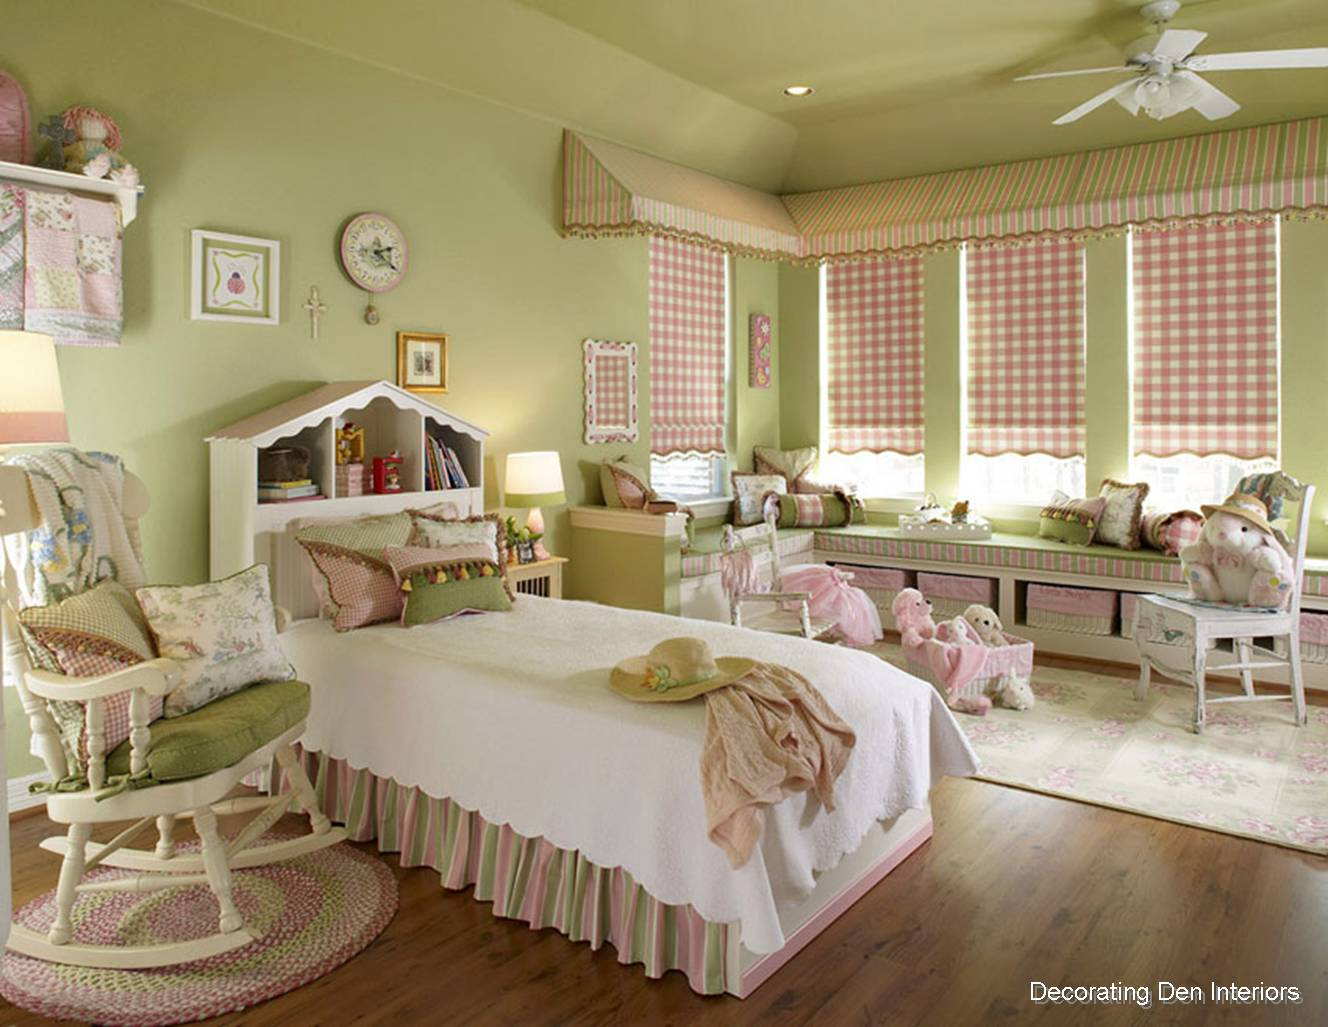 Tips for Decorating Kid - Kids Window Treatments Design Ideas's Rooms | Devine Decorating Results for ...